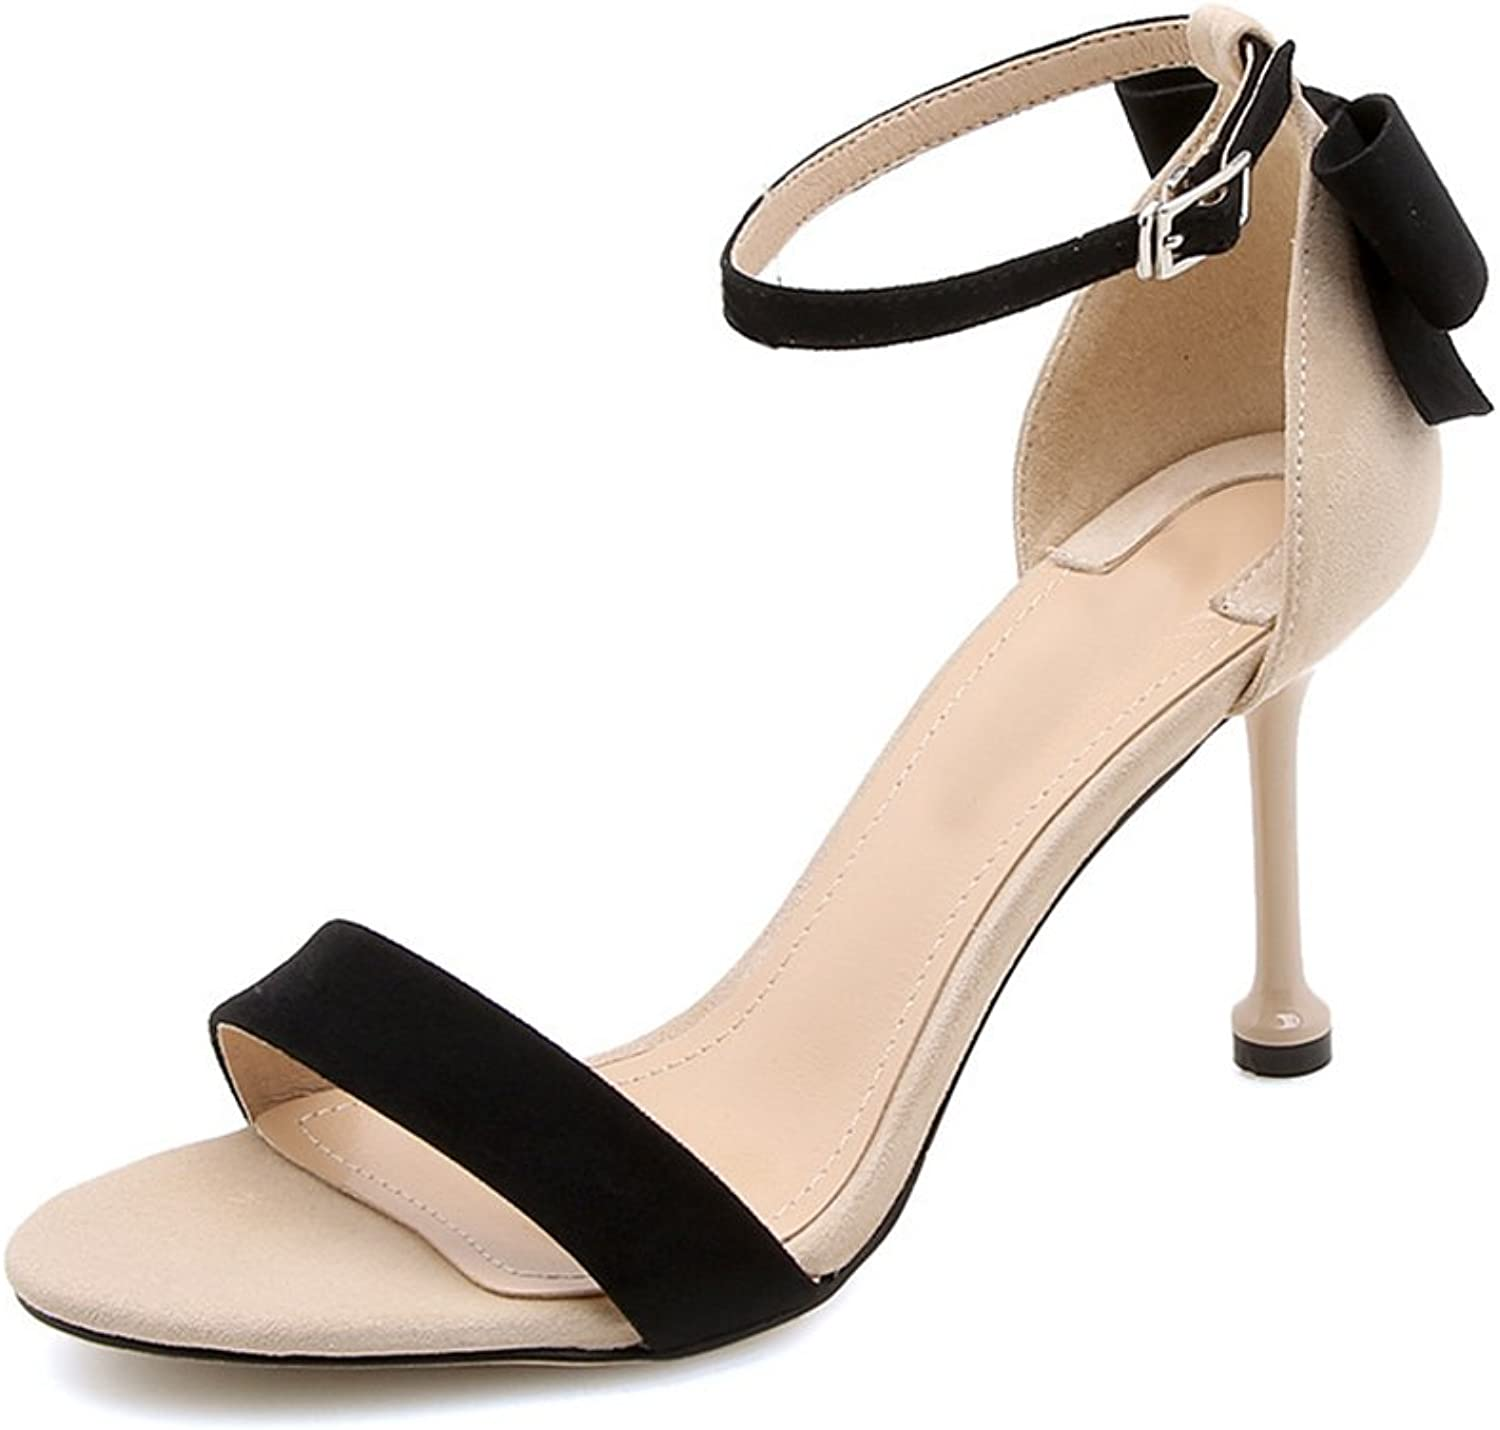 Summer Heeled Open-Toe Sandals Female Fine Round Head Buckle Strap Bow shoes XIAOQI